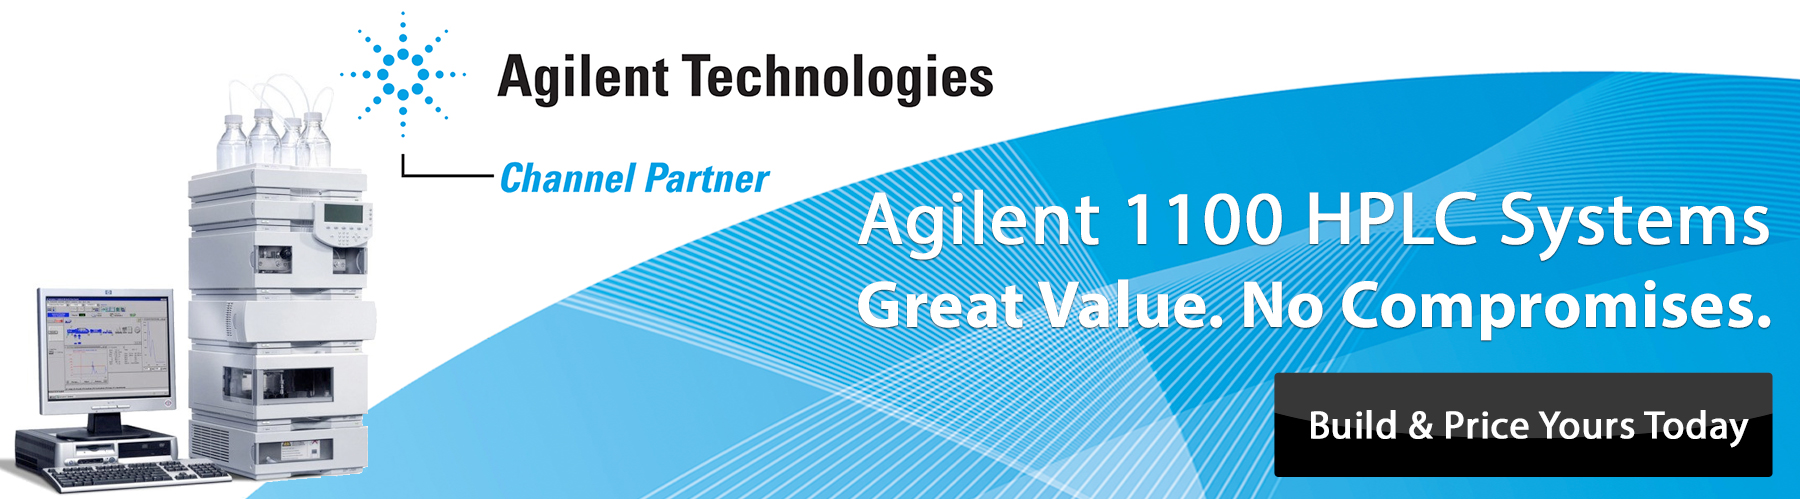 Agilent HPLC Partner